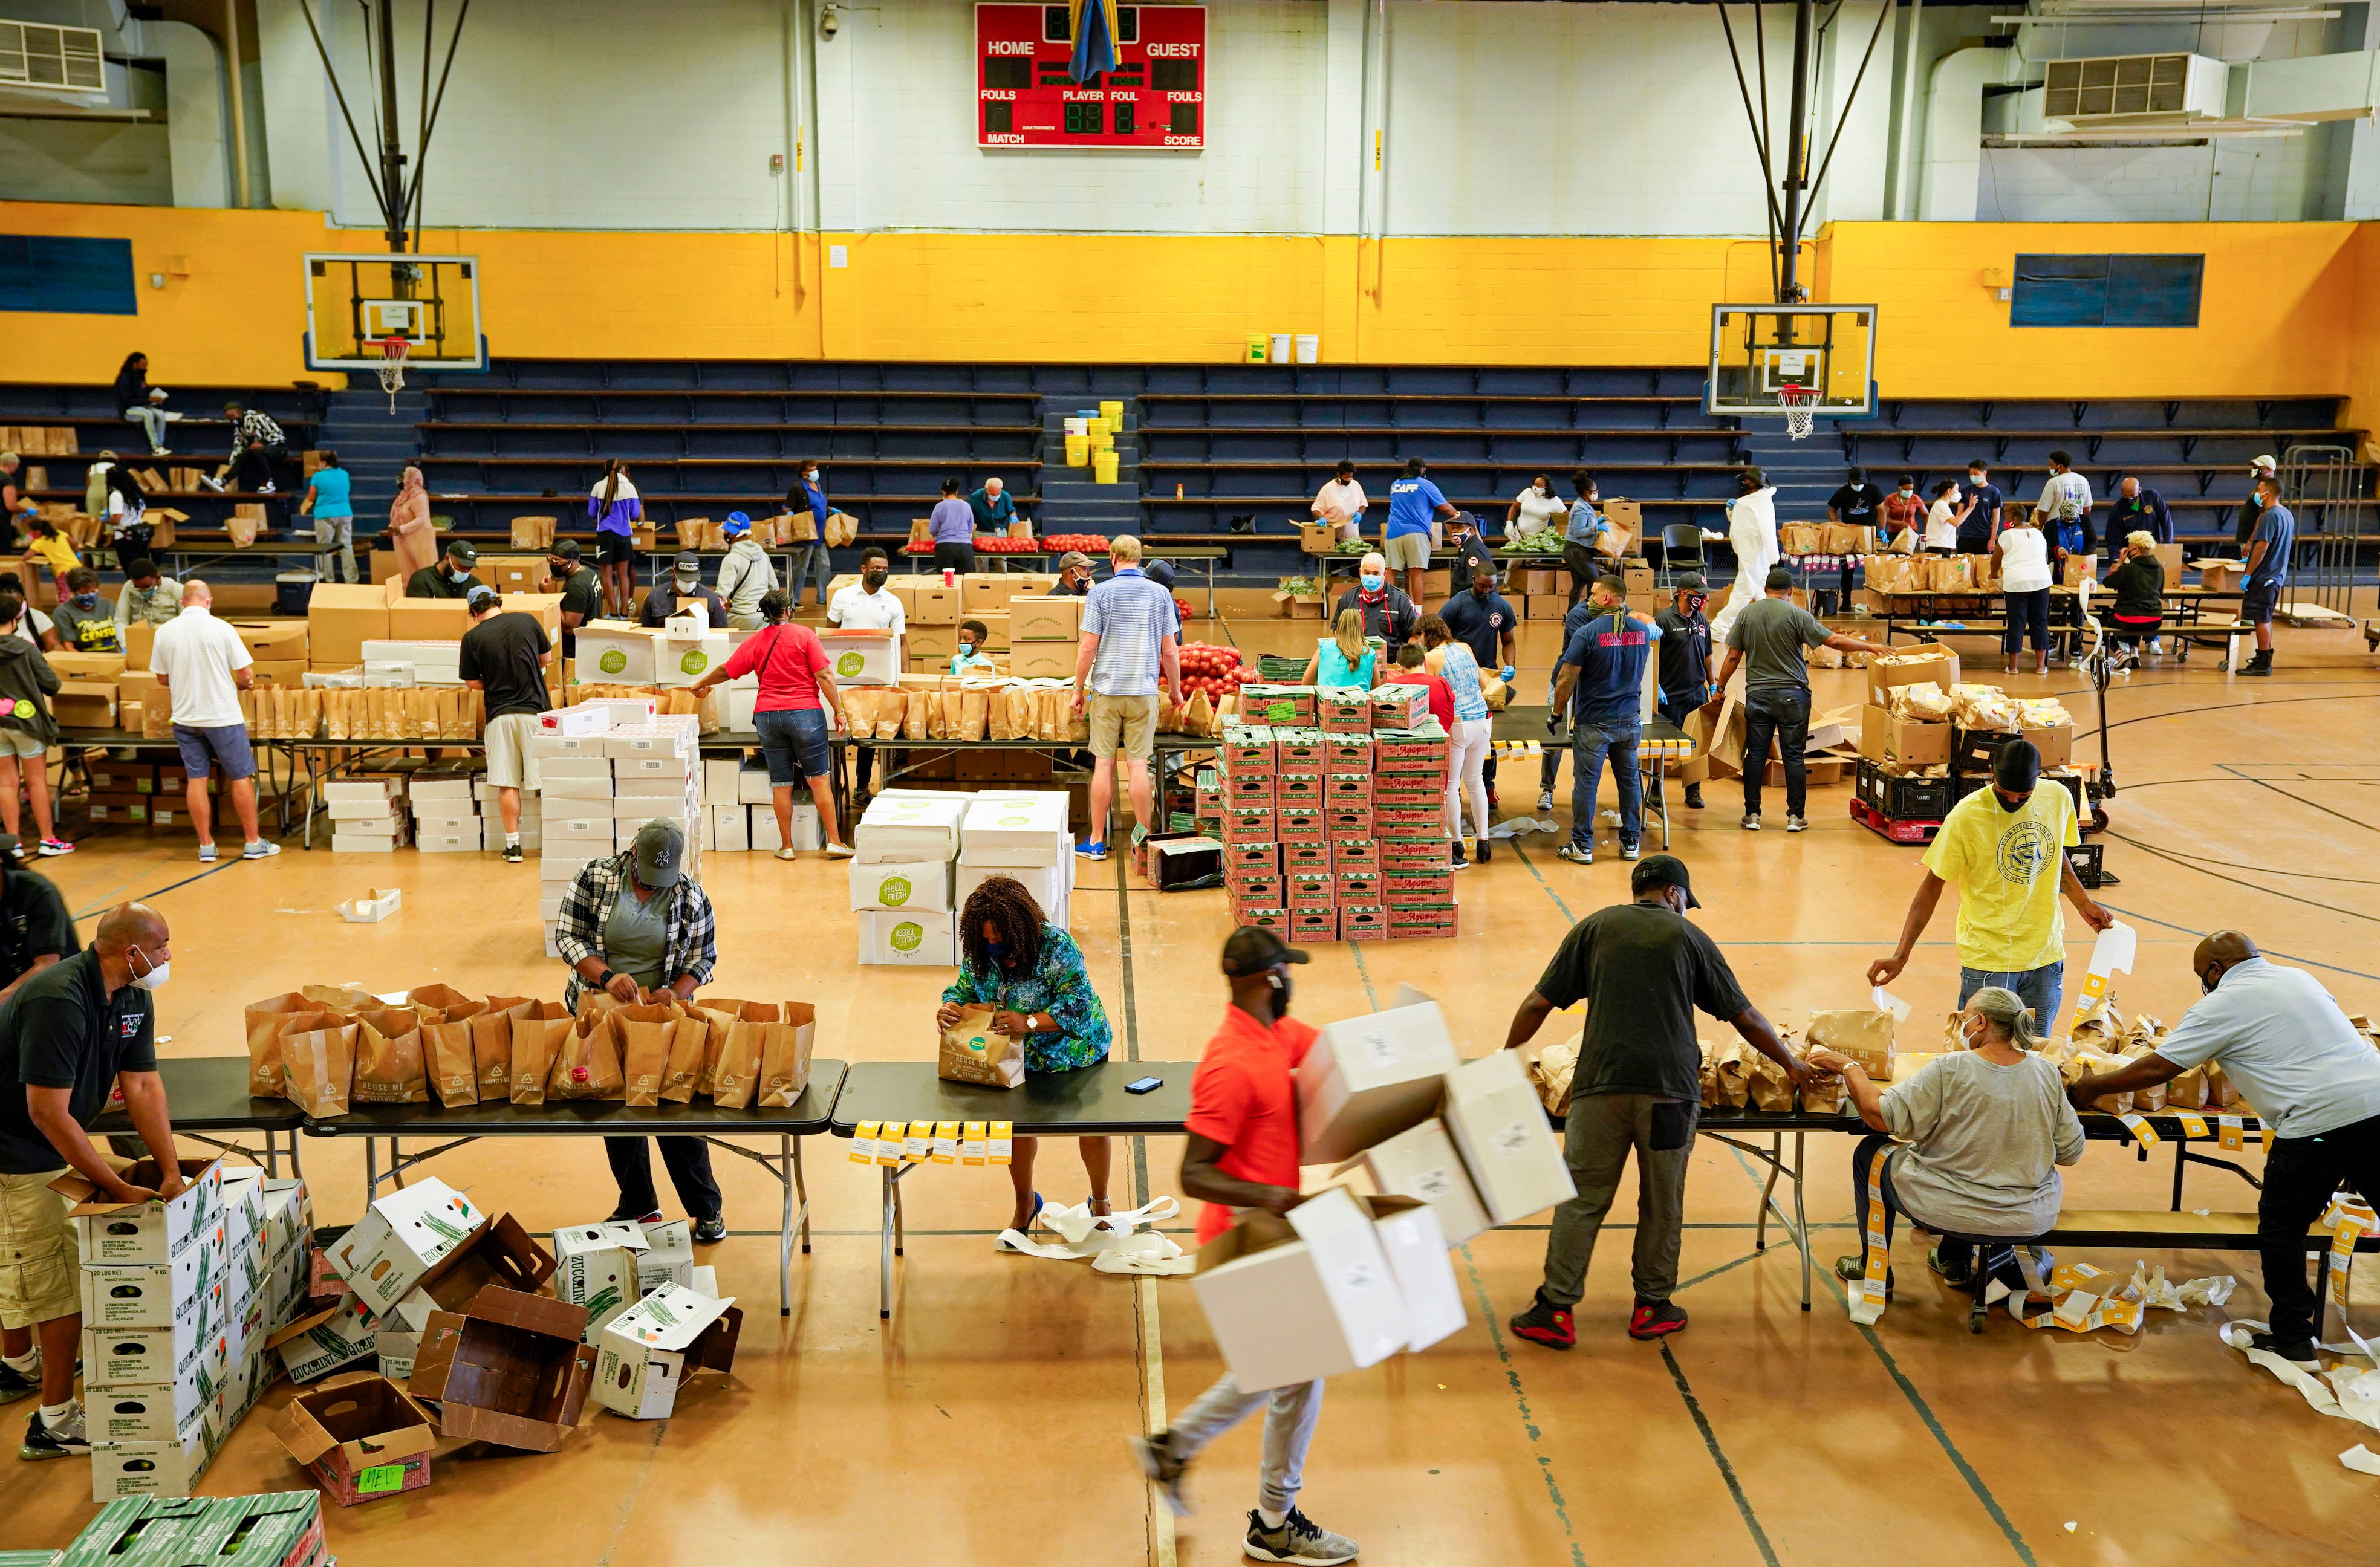 Volunteers, mostly city employees, help pack bags of food for families in need at the John F. Kennedy Recreation Center in Newark.